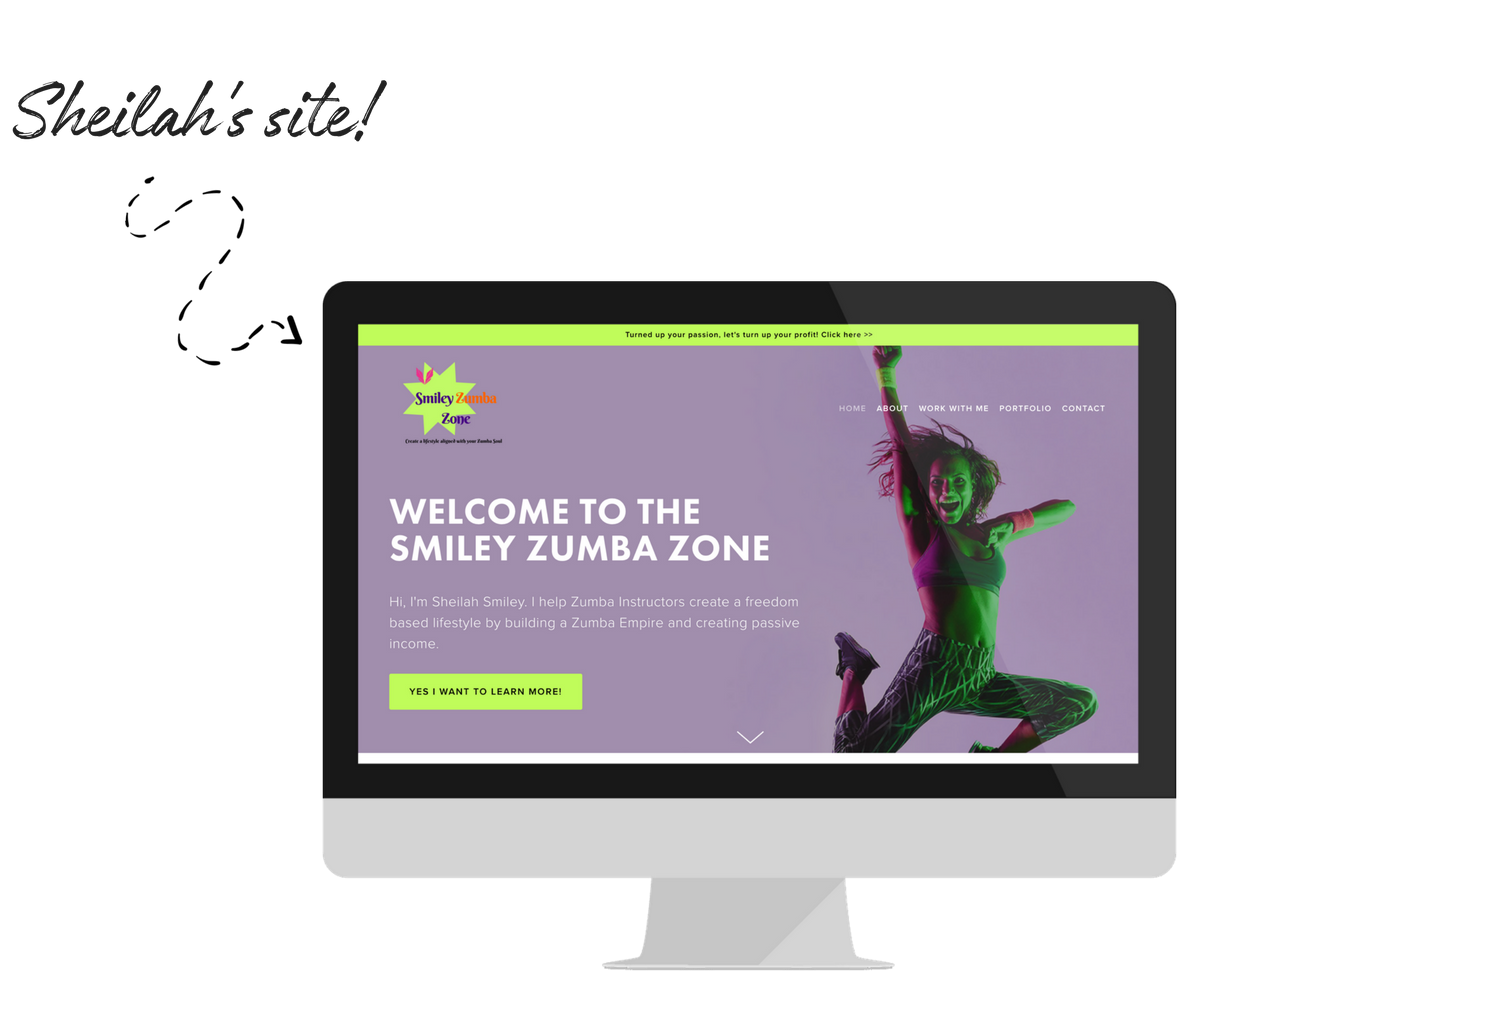 Sheilah created her Squarespace website from scratch, with no experience, using the best Squarespace online course, Website that Wows.